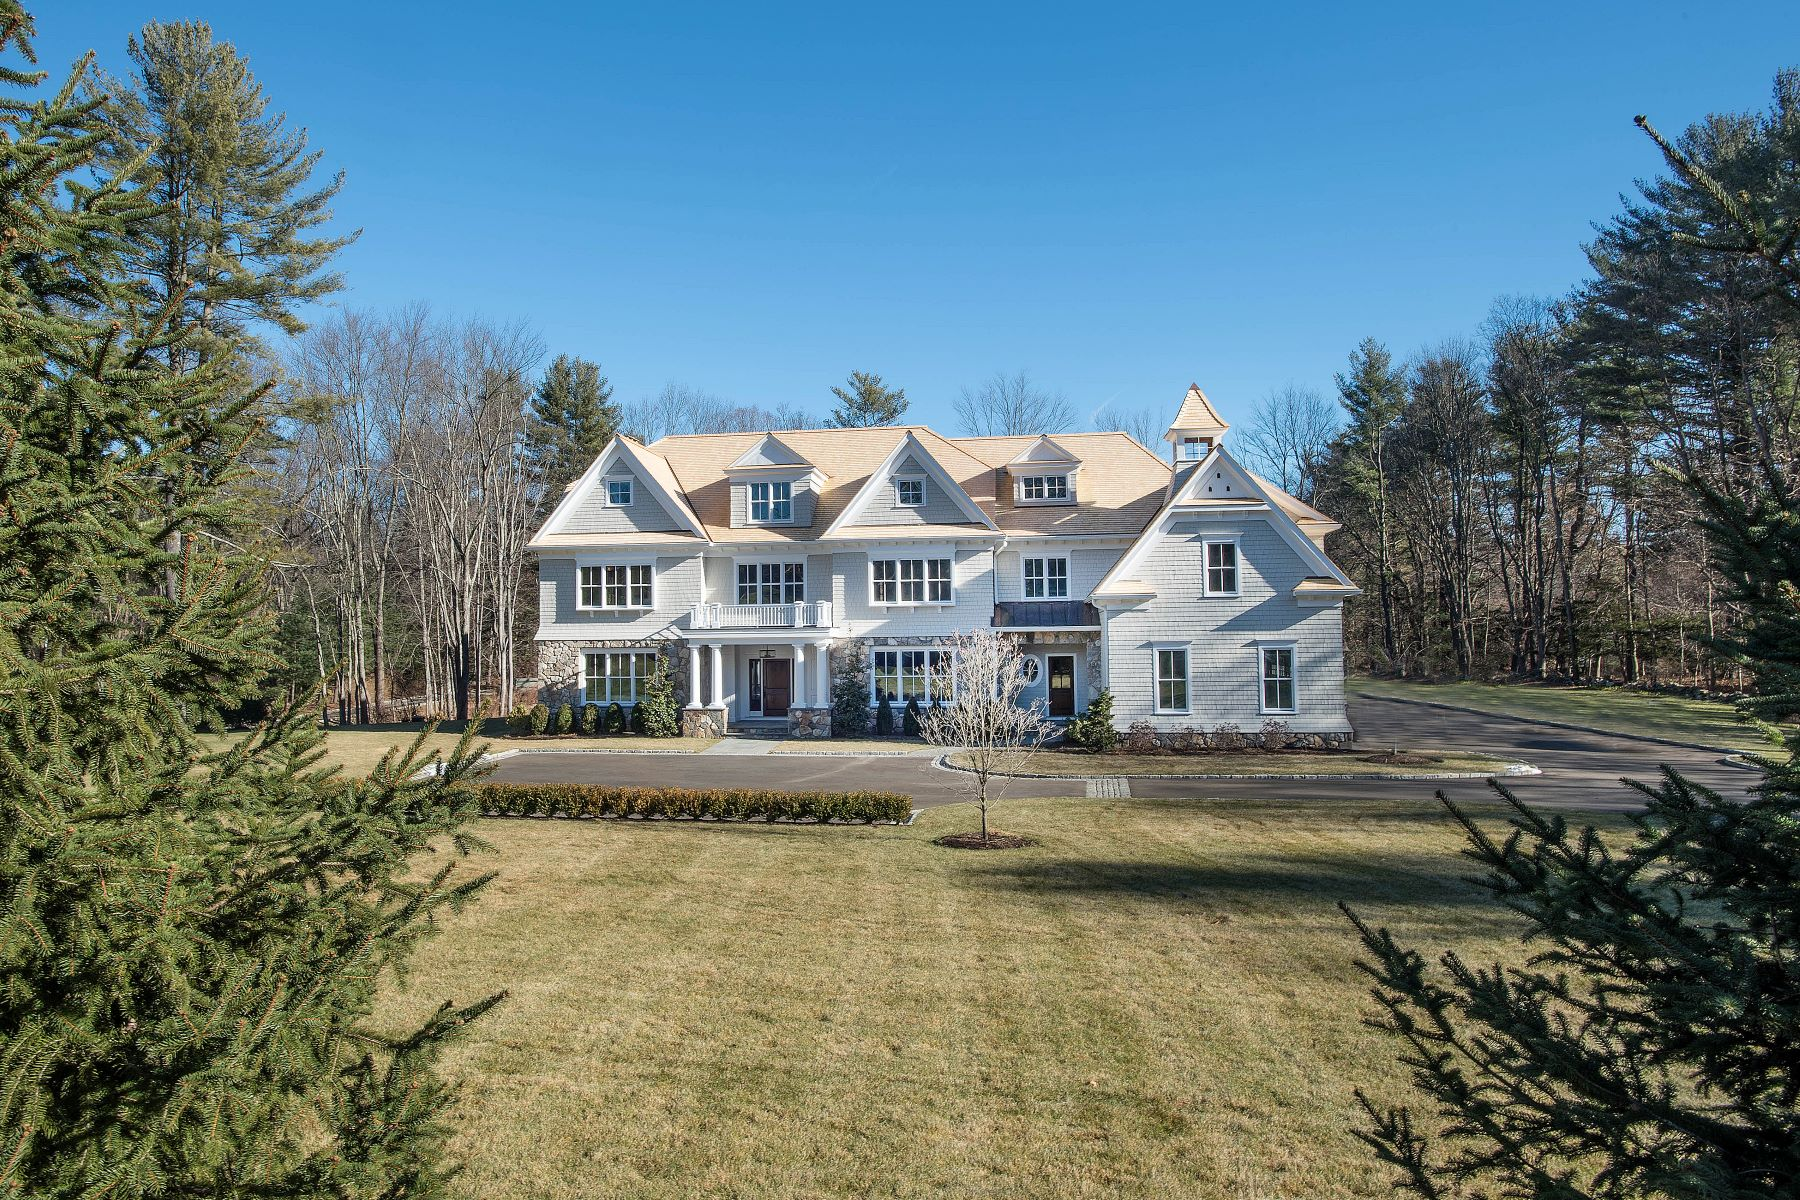 Single Family Home for Sale at The Best in New Construction 375 West Road, New Canaan, Connecticut, 06840 United States